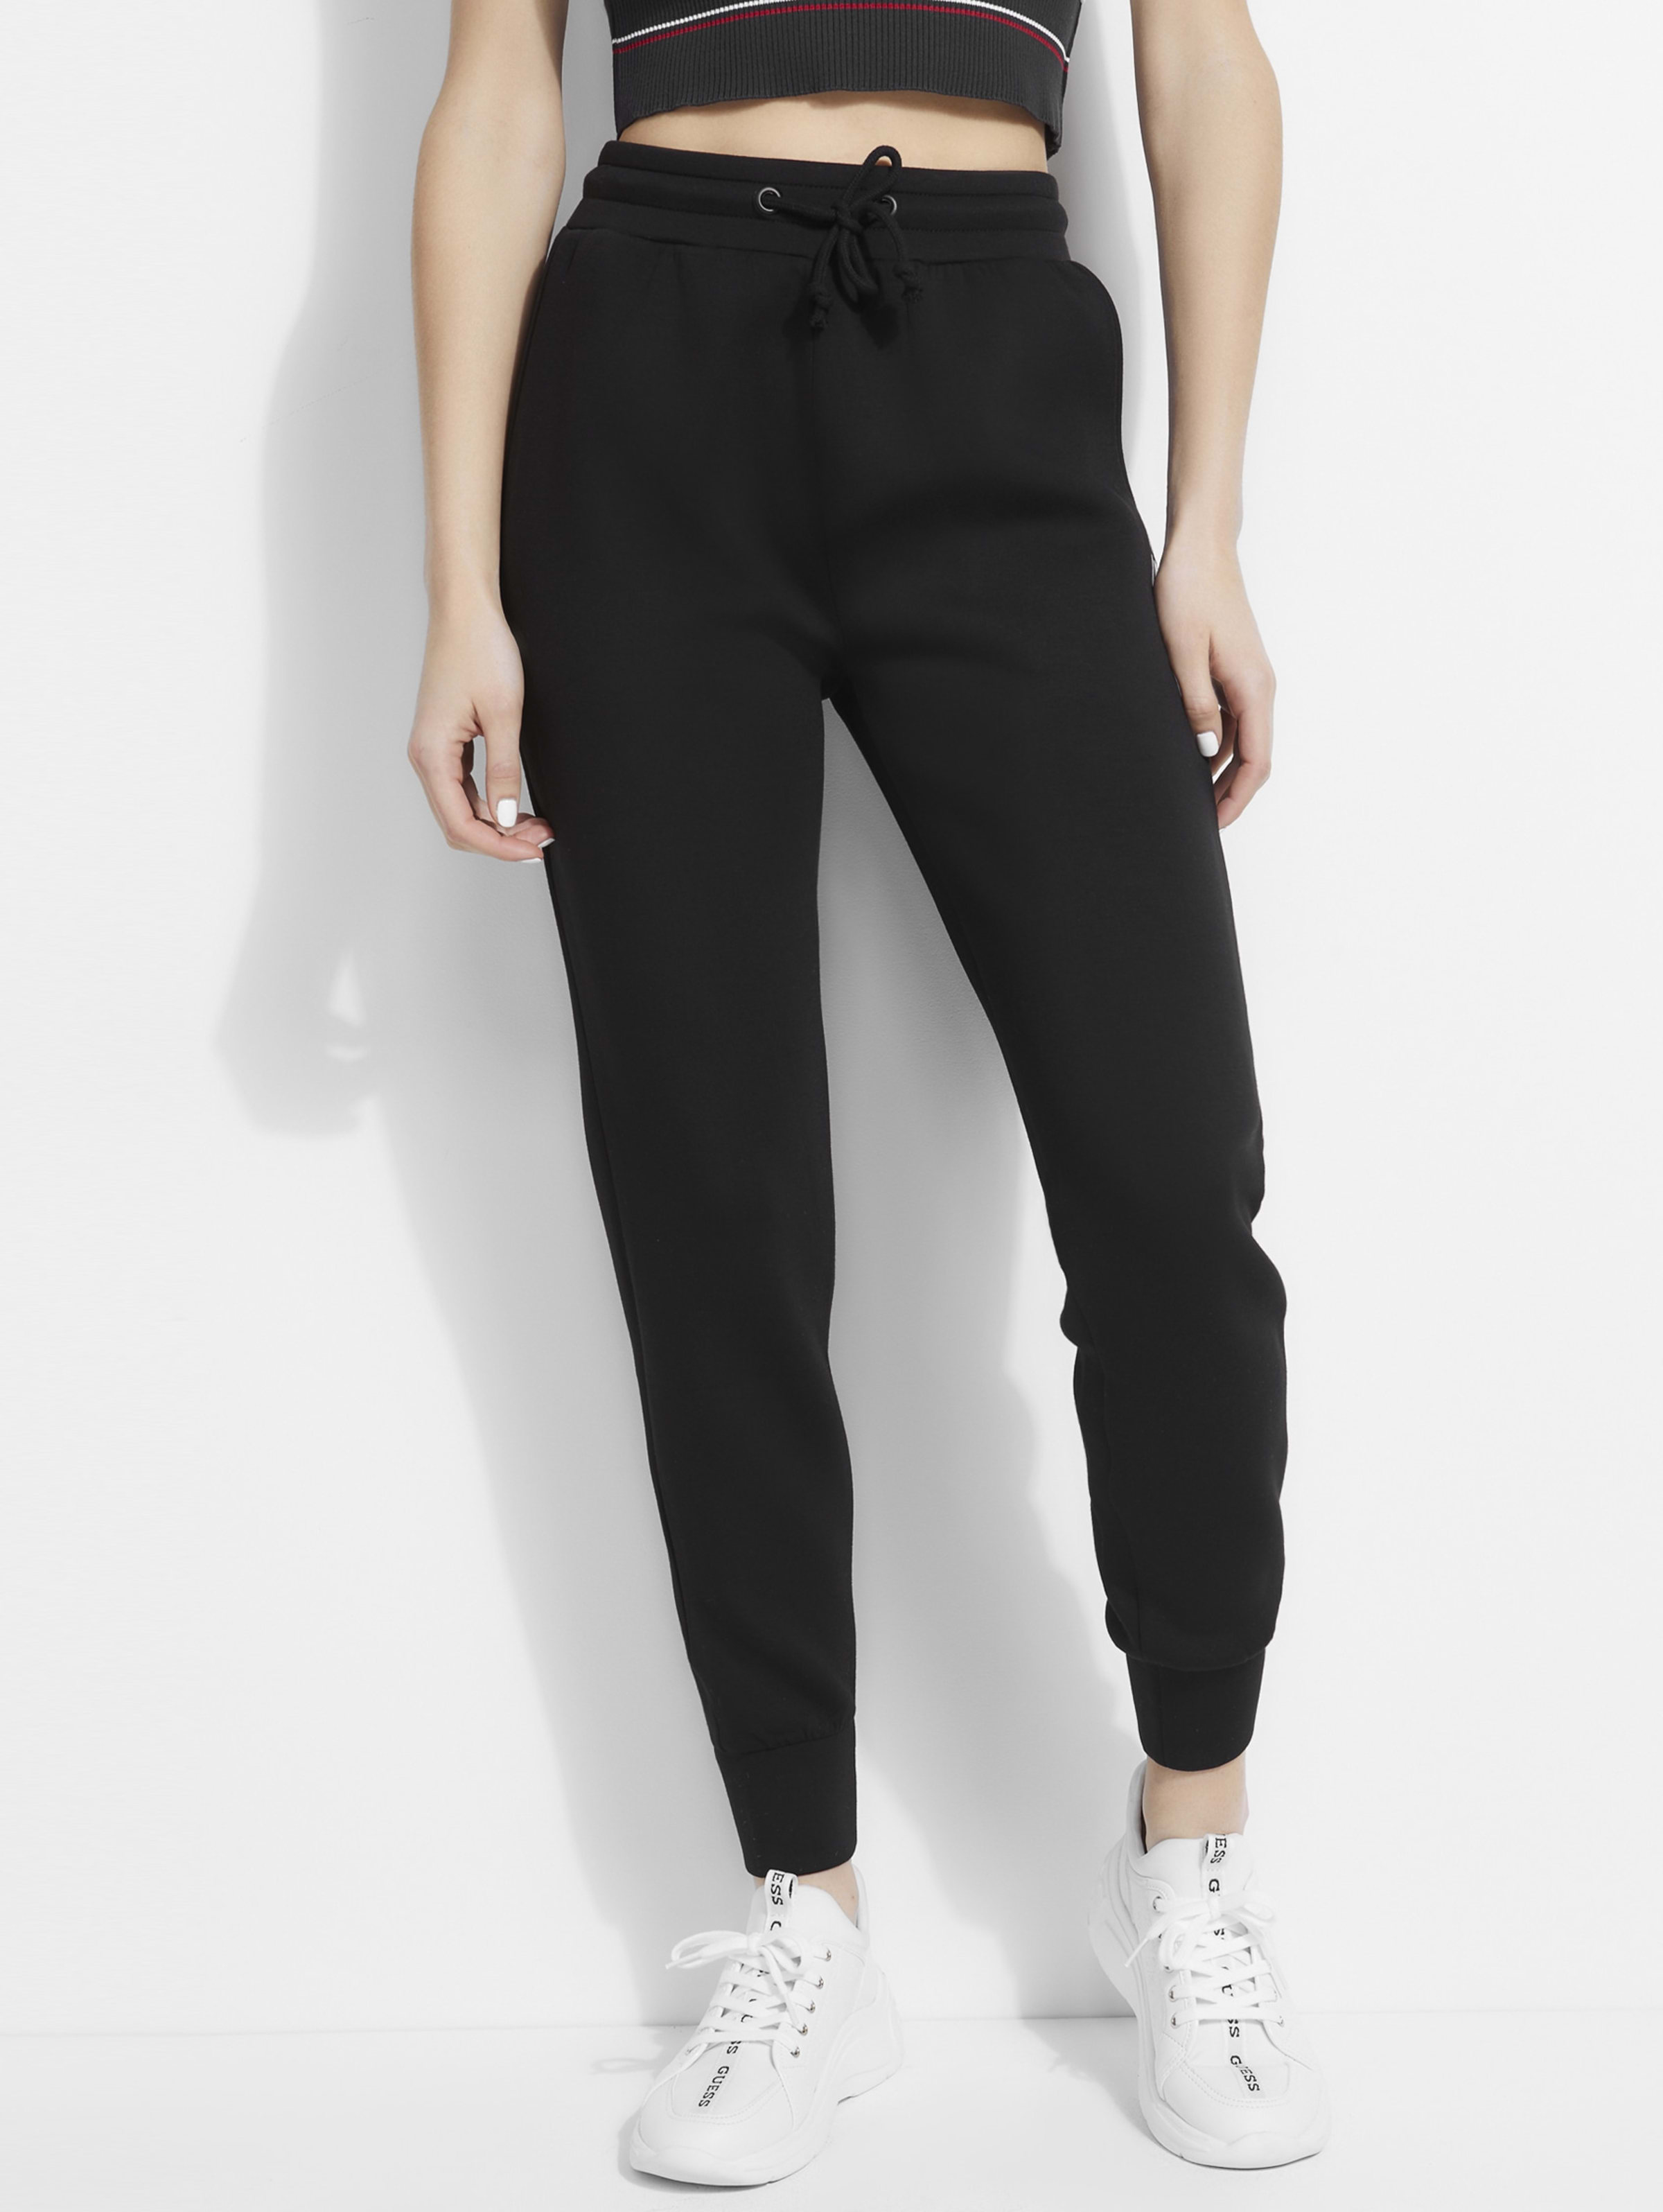 GUESS Womens Soft Casual Jogger Pants